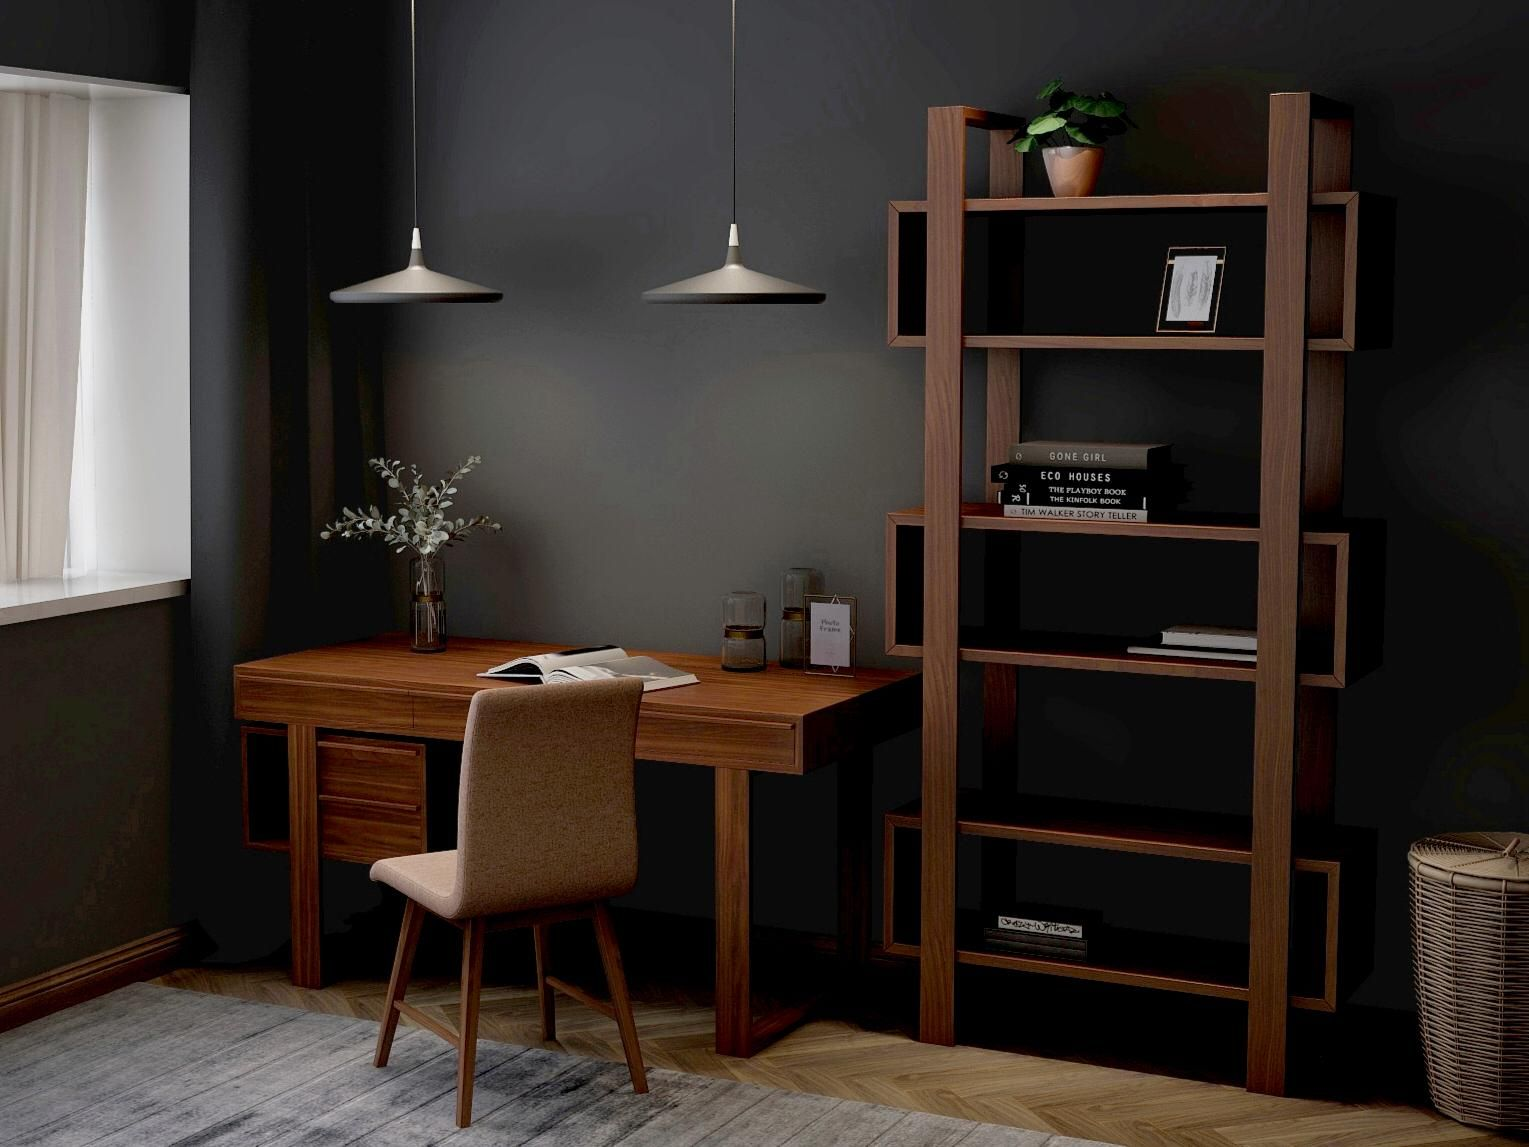 squarerooms-commune-local-furniture-excelsior-writing-desk-dark-moody-wooden-study-home-office